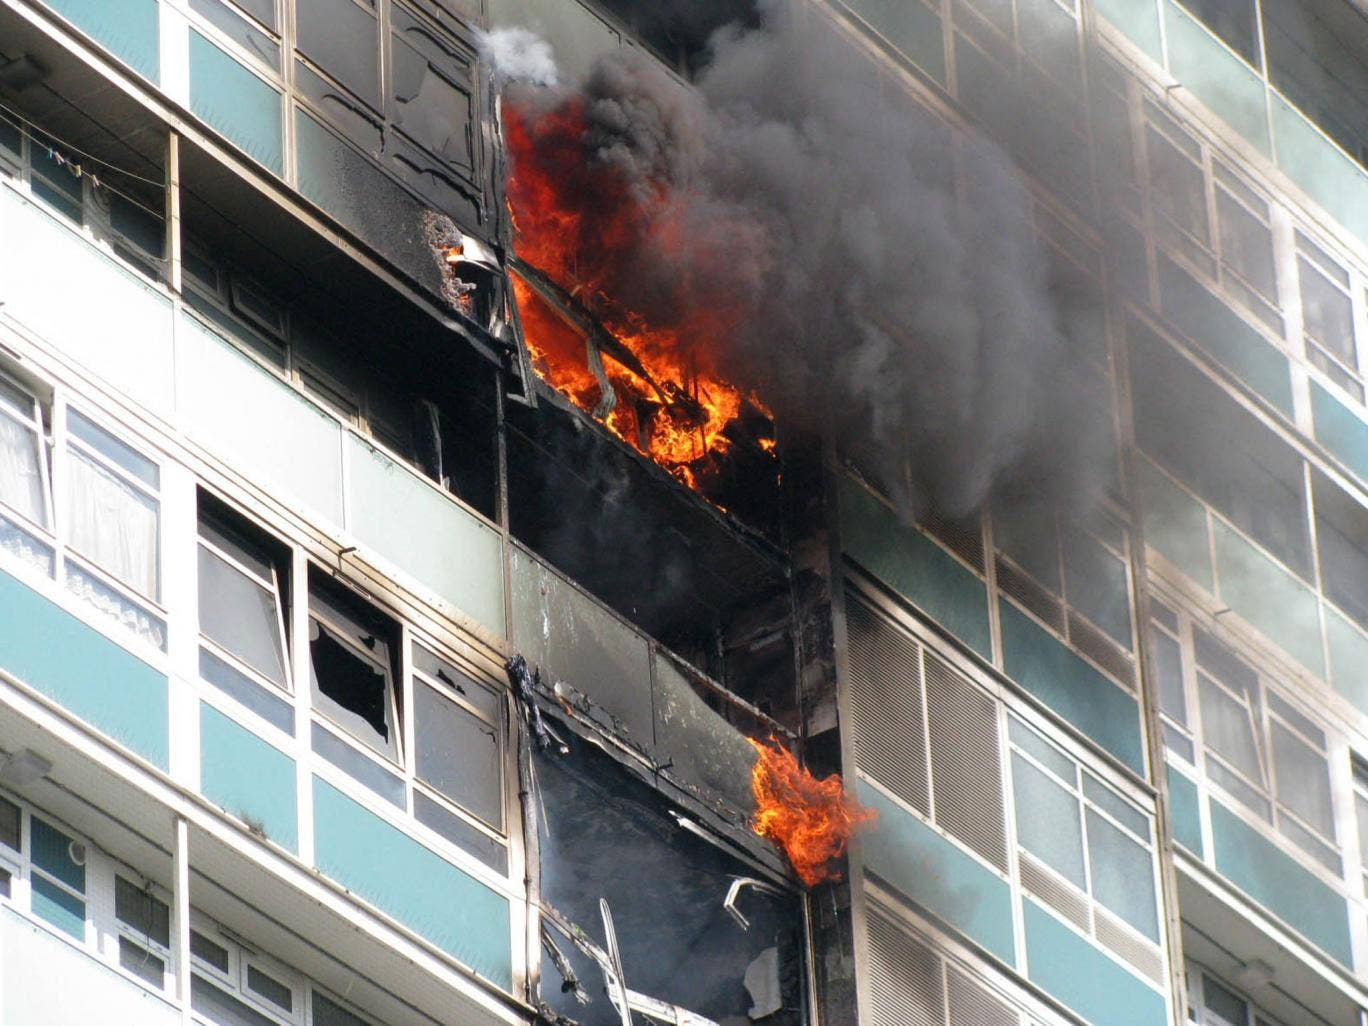 Tragedy: Lakanal House in the Sceaux Gardens estate in Camberwell, south London, which caught fire in July 2009, killing six people